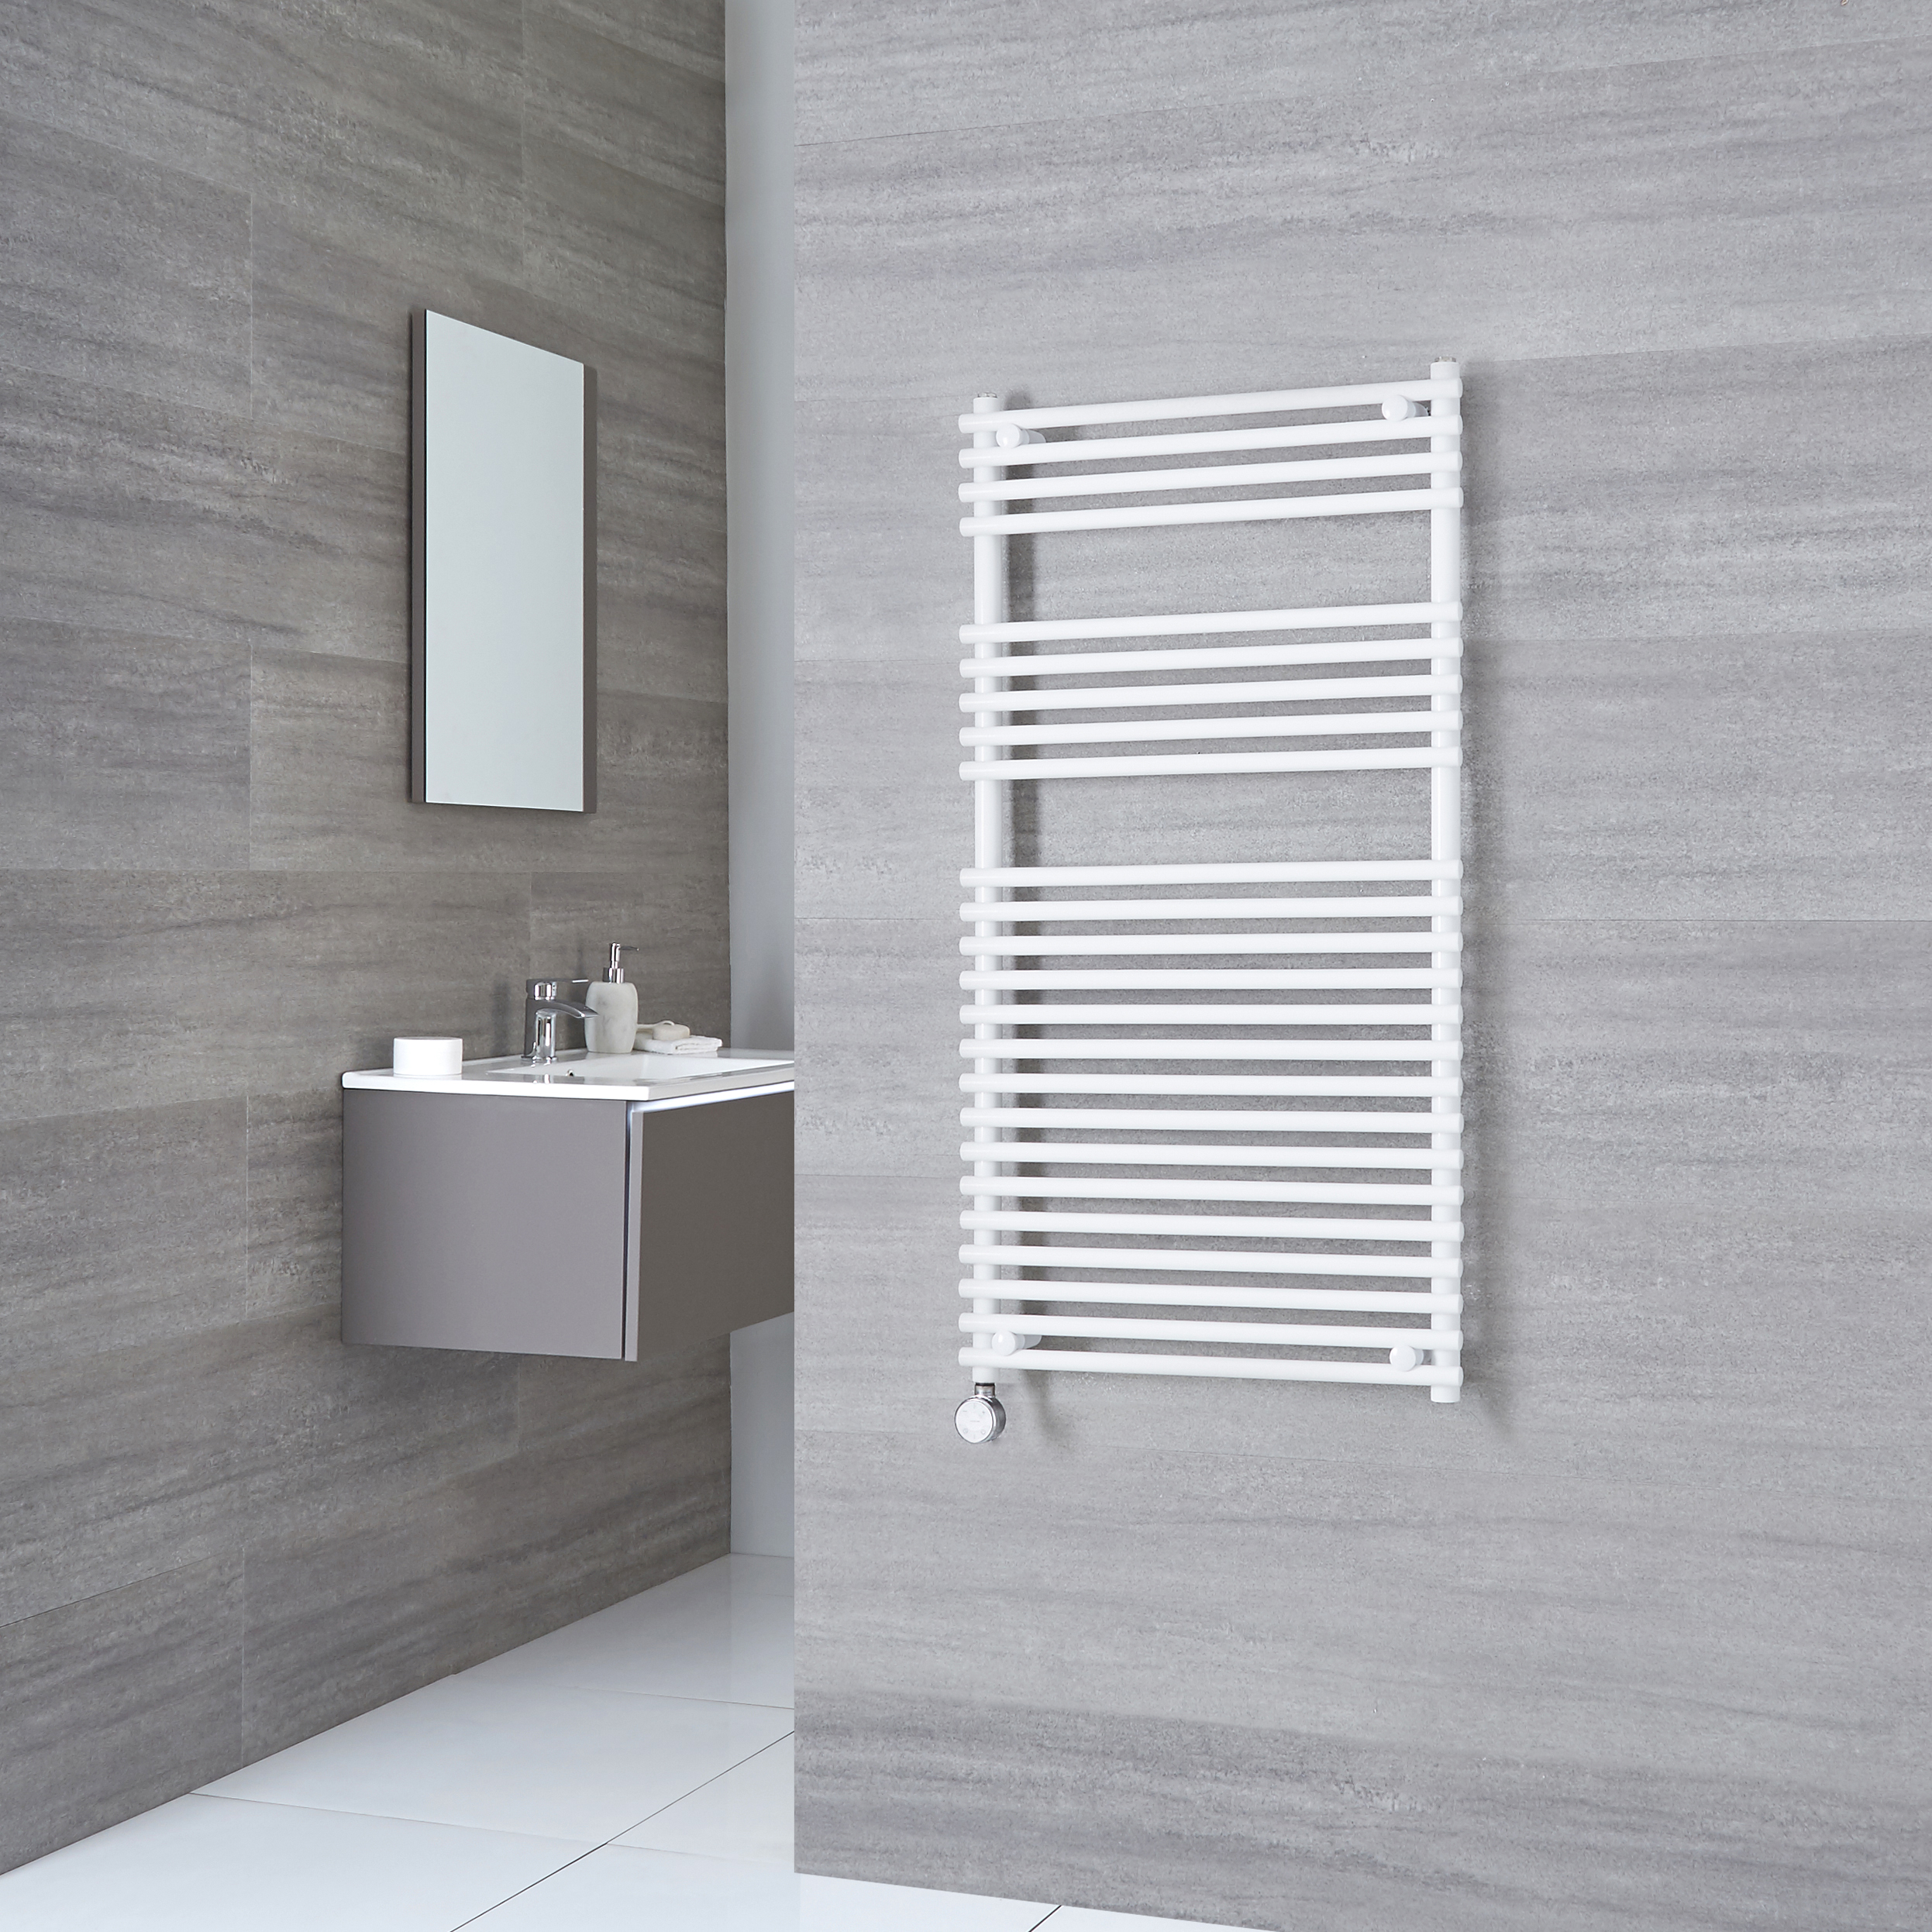 Kudox Electric - Flat White Bar on Bar Towel Rail 1150mm x 600mm